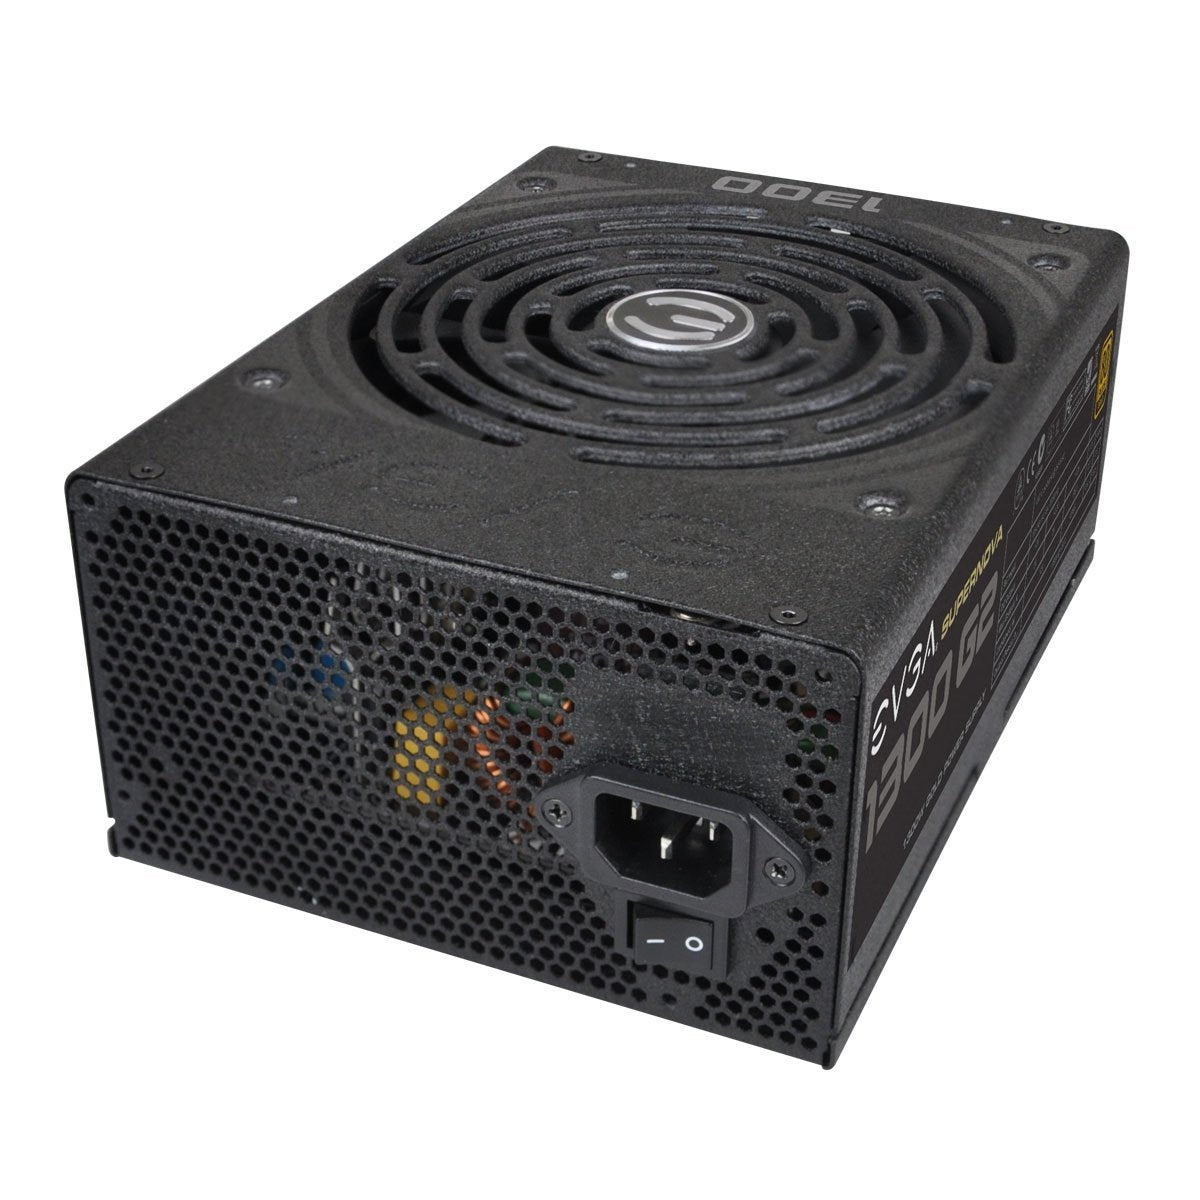 EVGA SuperNOVA 1300 G2 80+ GOLD, 1300W Fully Modular NVIDIA SLI and Crossfire Ready Power Supply 120-G2-1300-XR